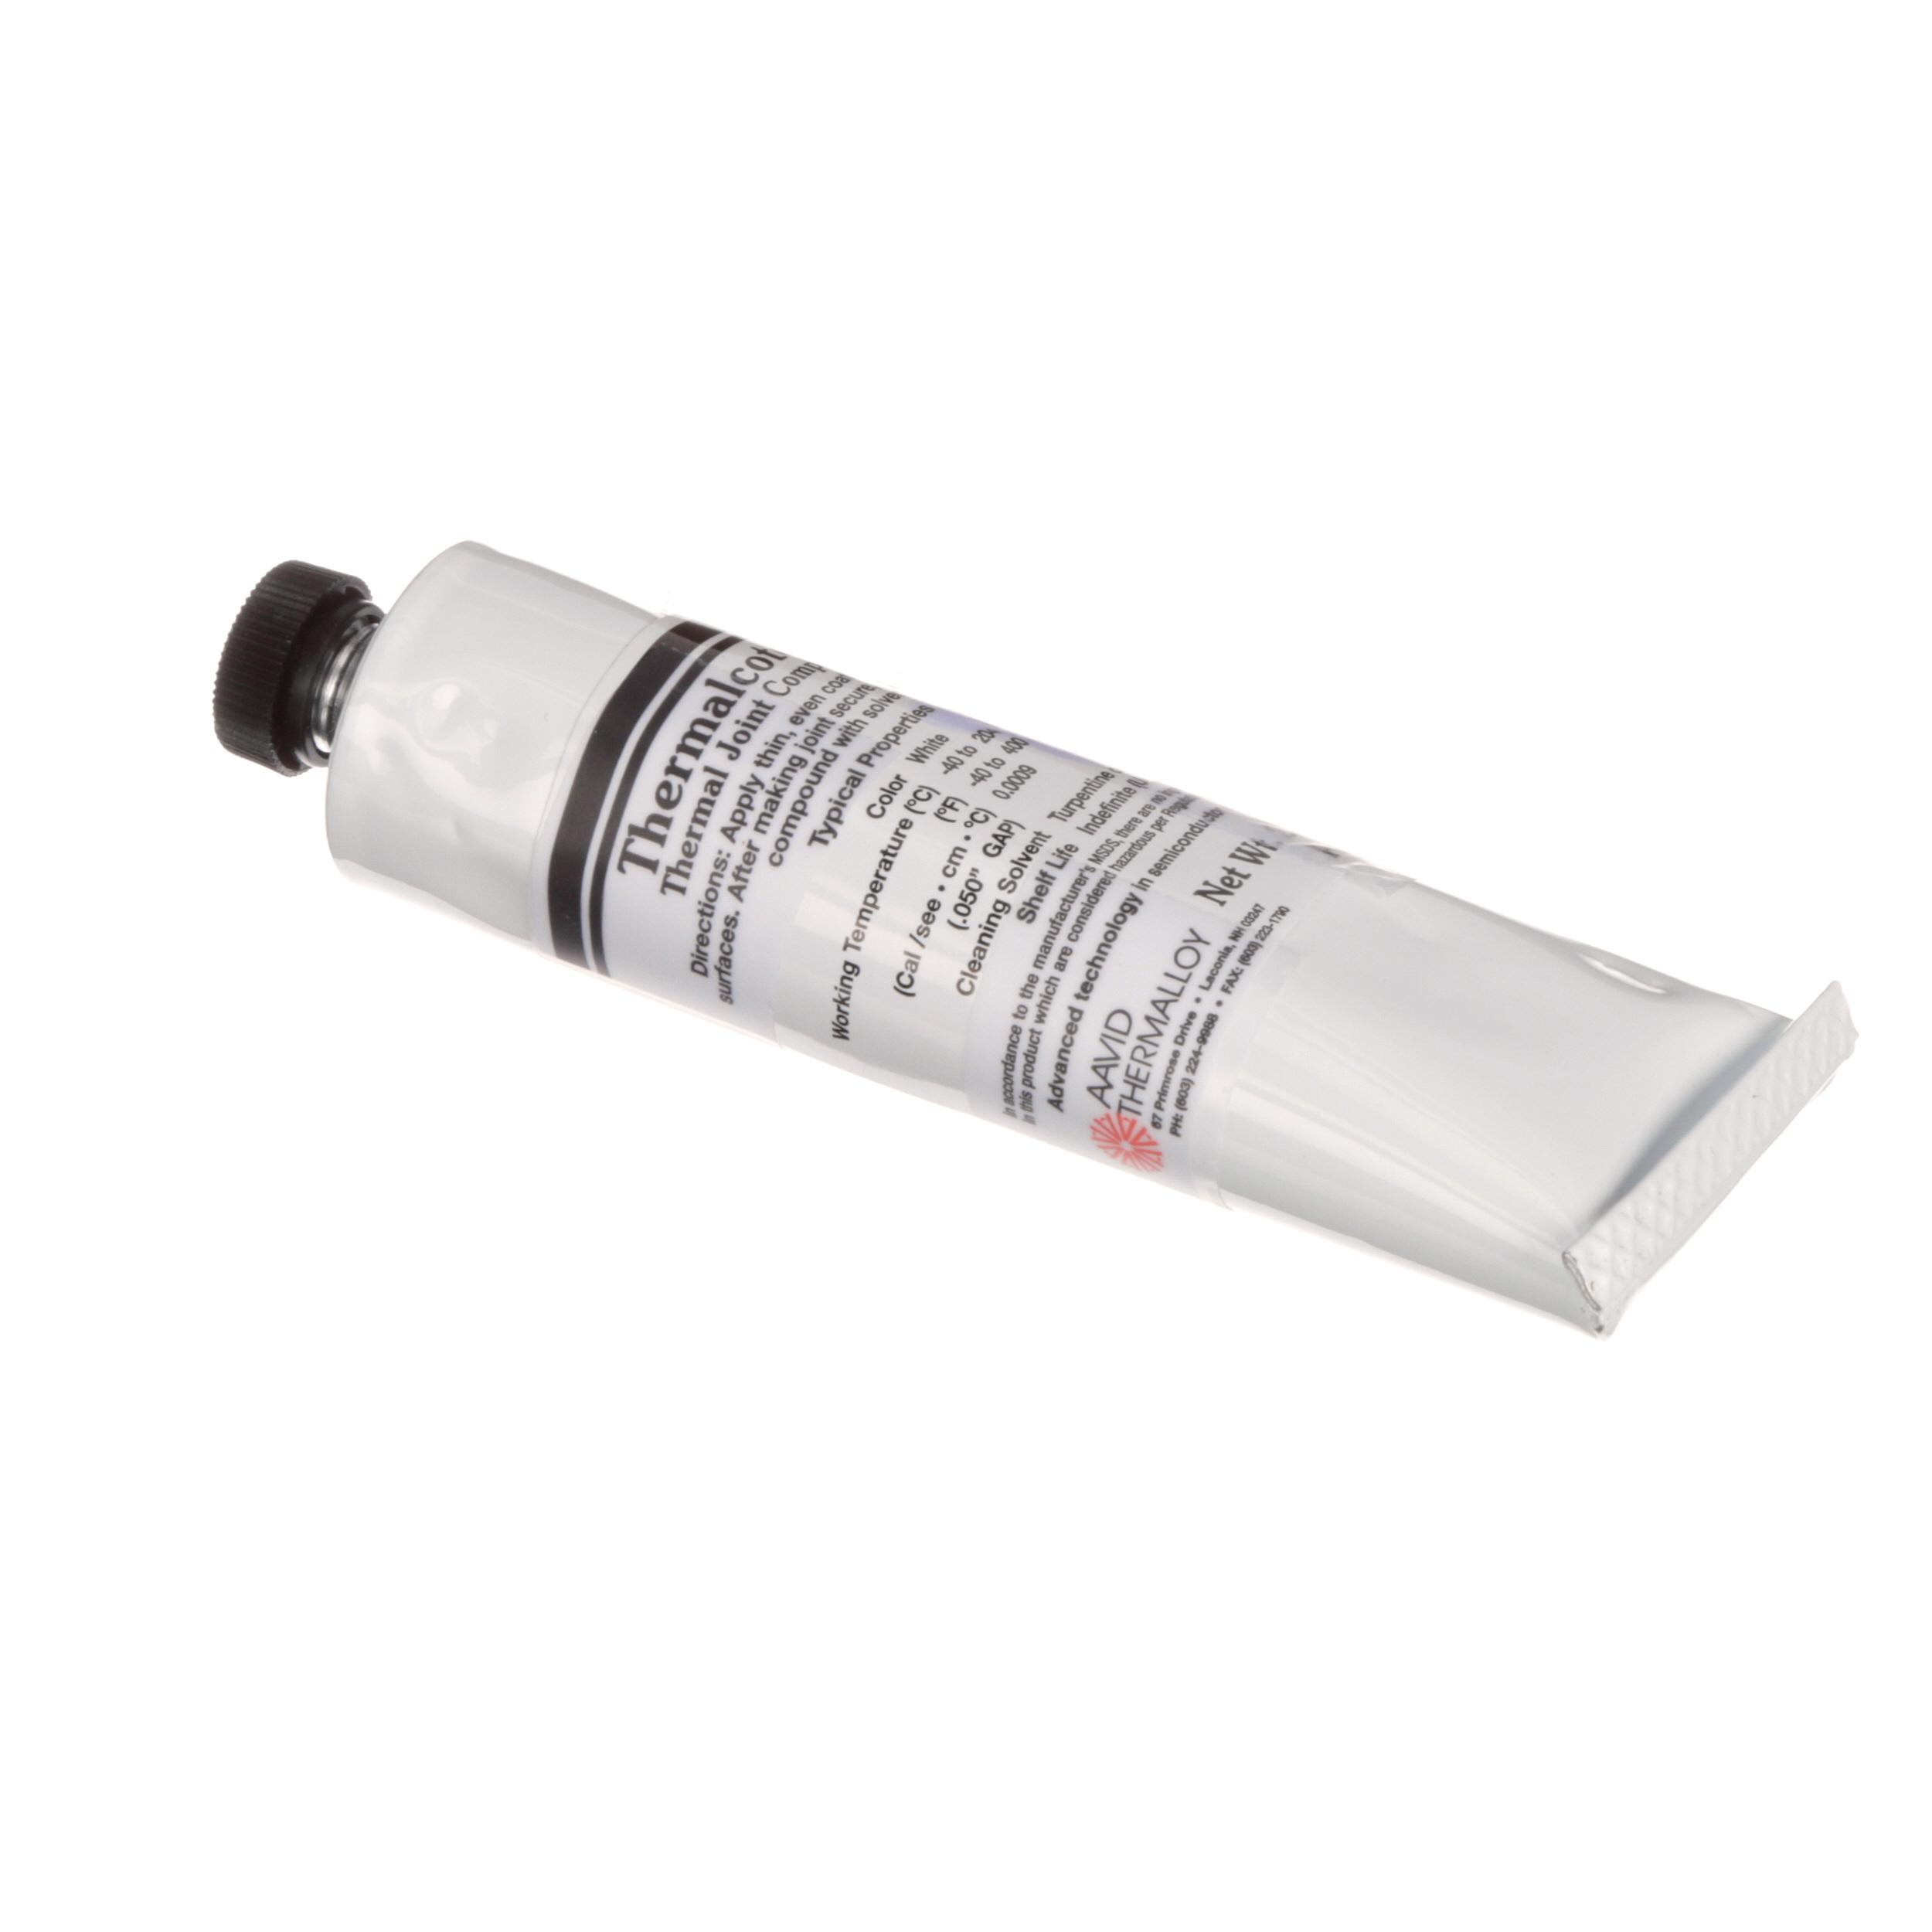 HOBART THERMAL JOINT COMPOUND,2 OZ